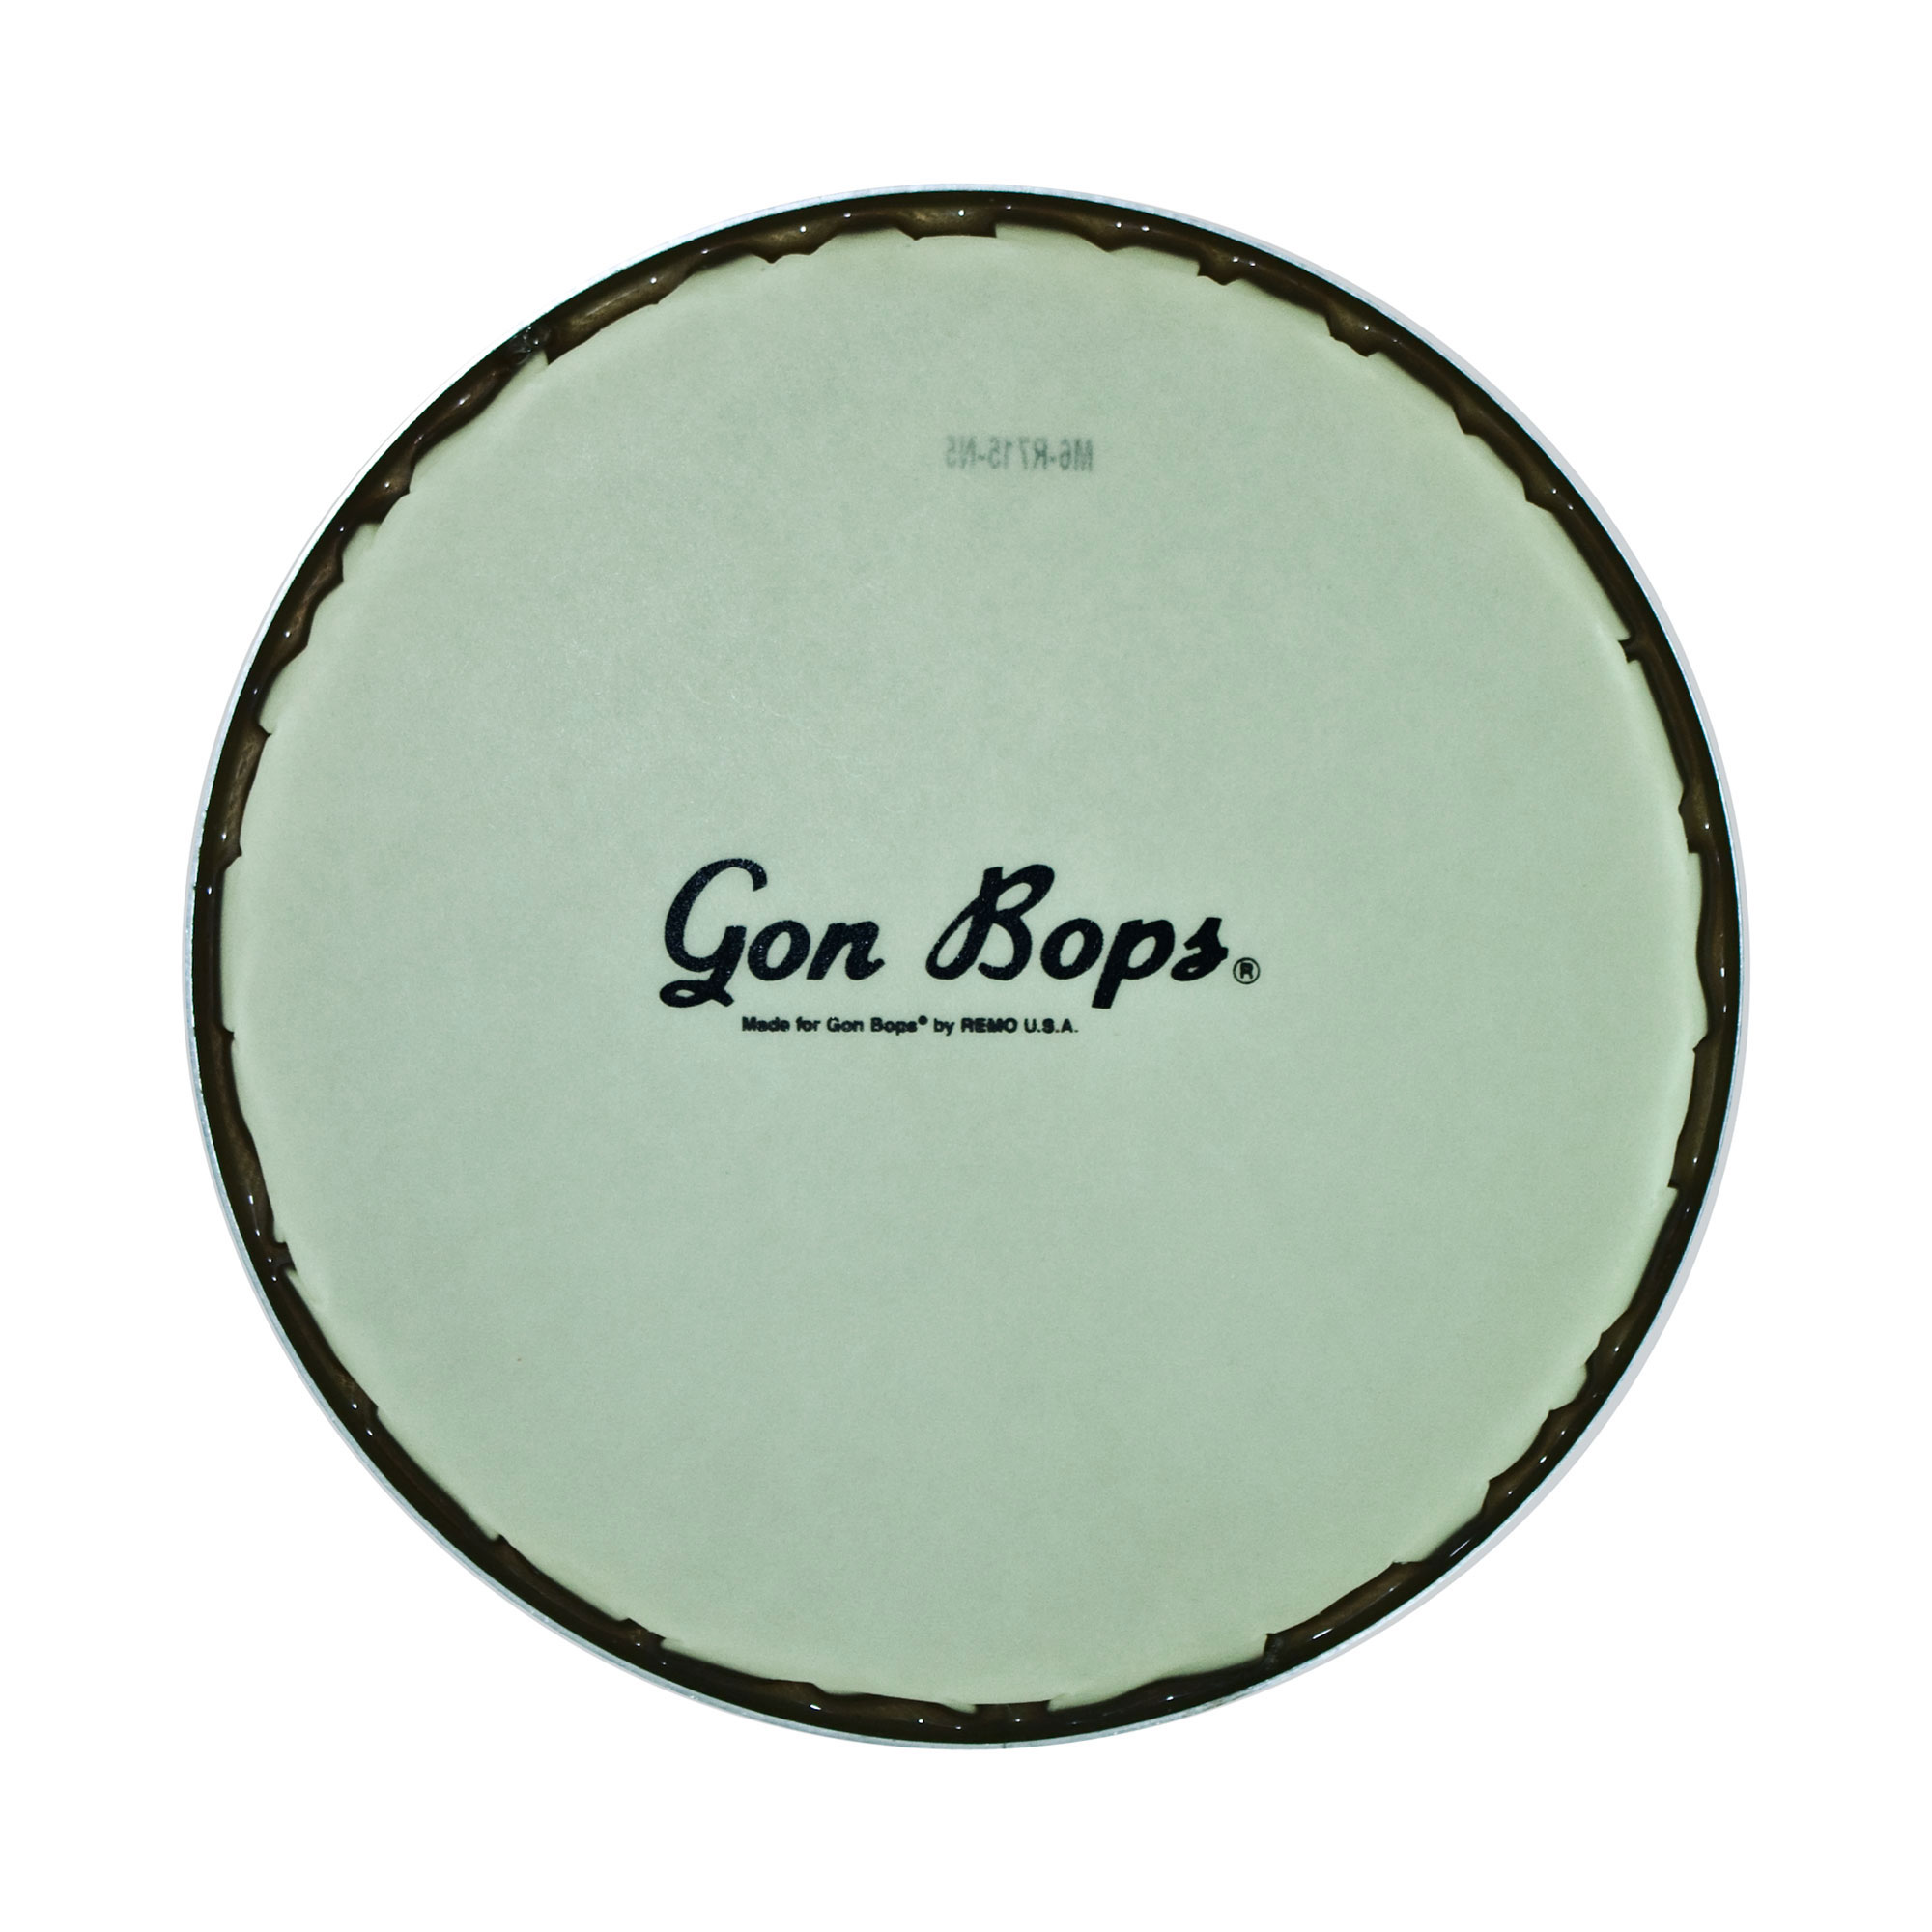 "Gon Bops 7"" Nuskyn Synthetic Bongo Drum Head"